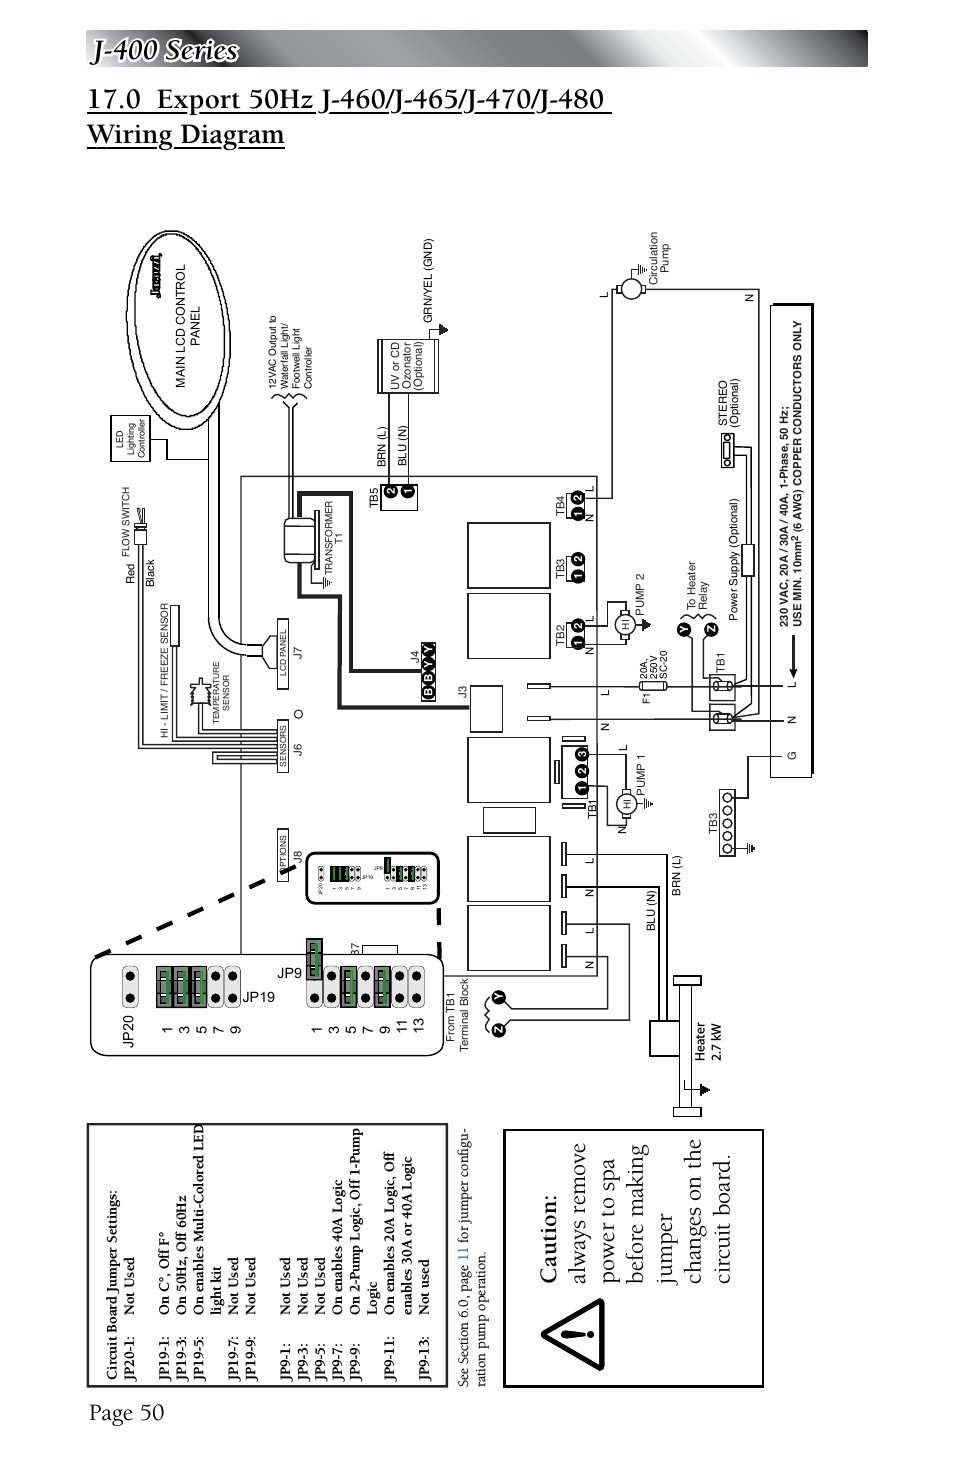 aqua hot wiring diagram